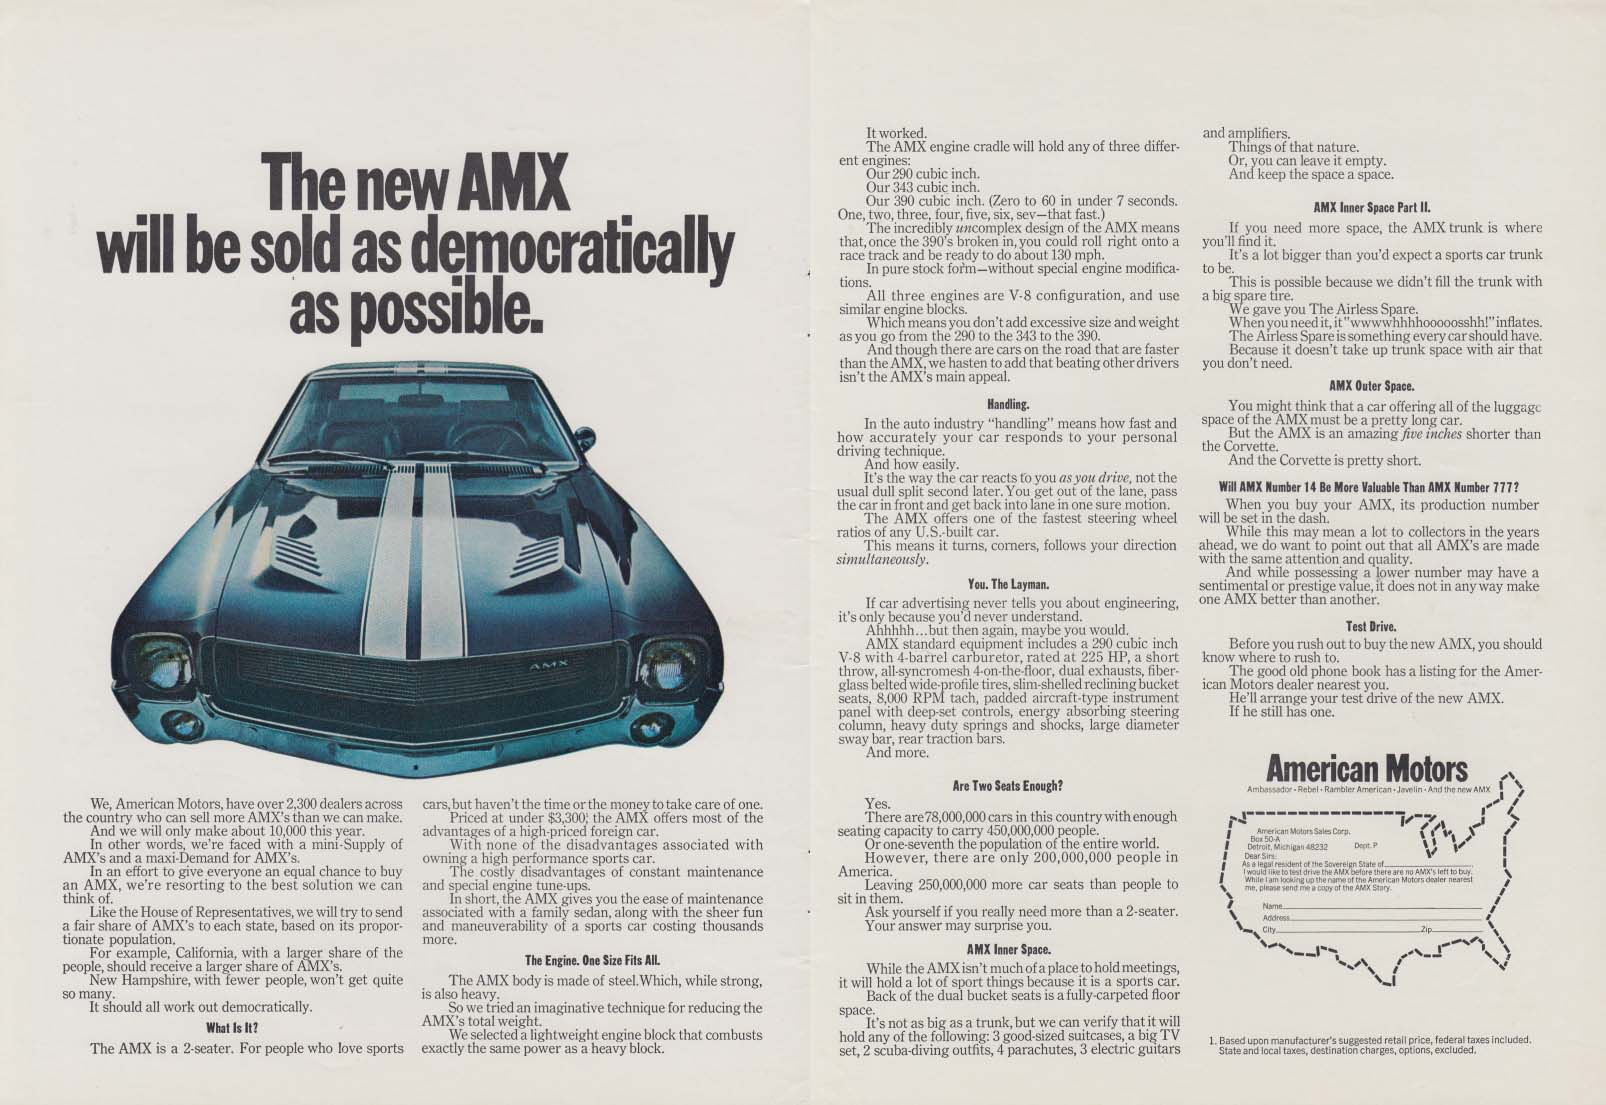 Image for The new AMX will be sold as democratically as possible ad 1968 Pby